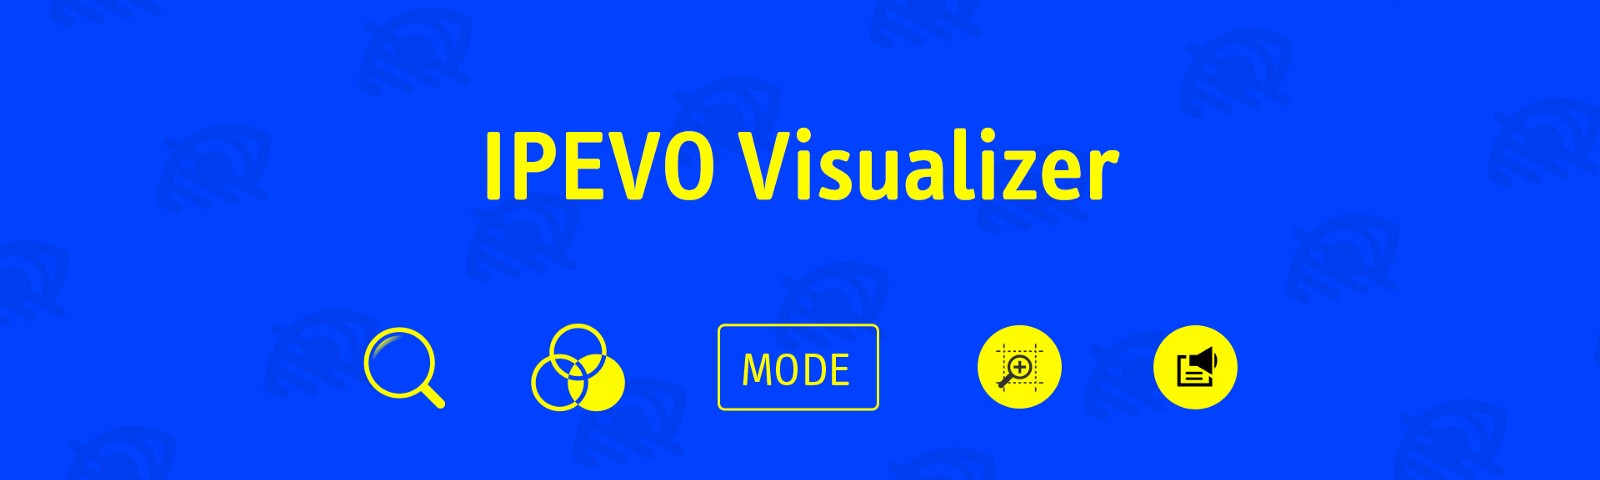 IPEVO Visualizer software and its visually impaired friendly features